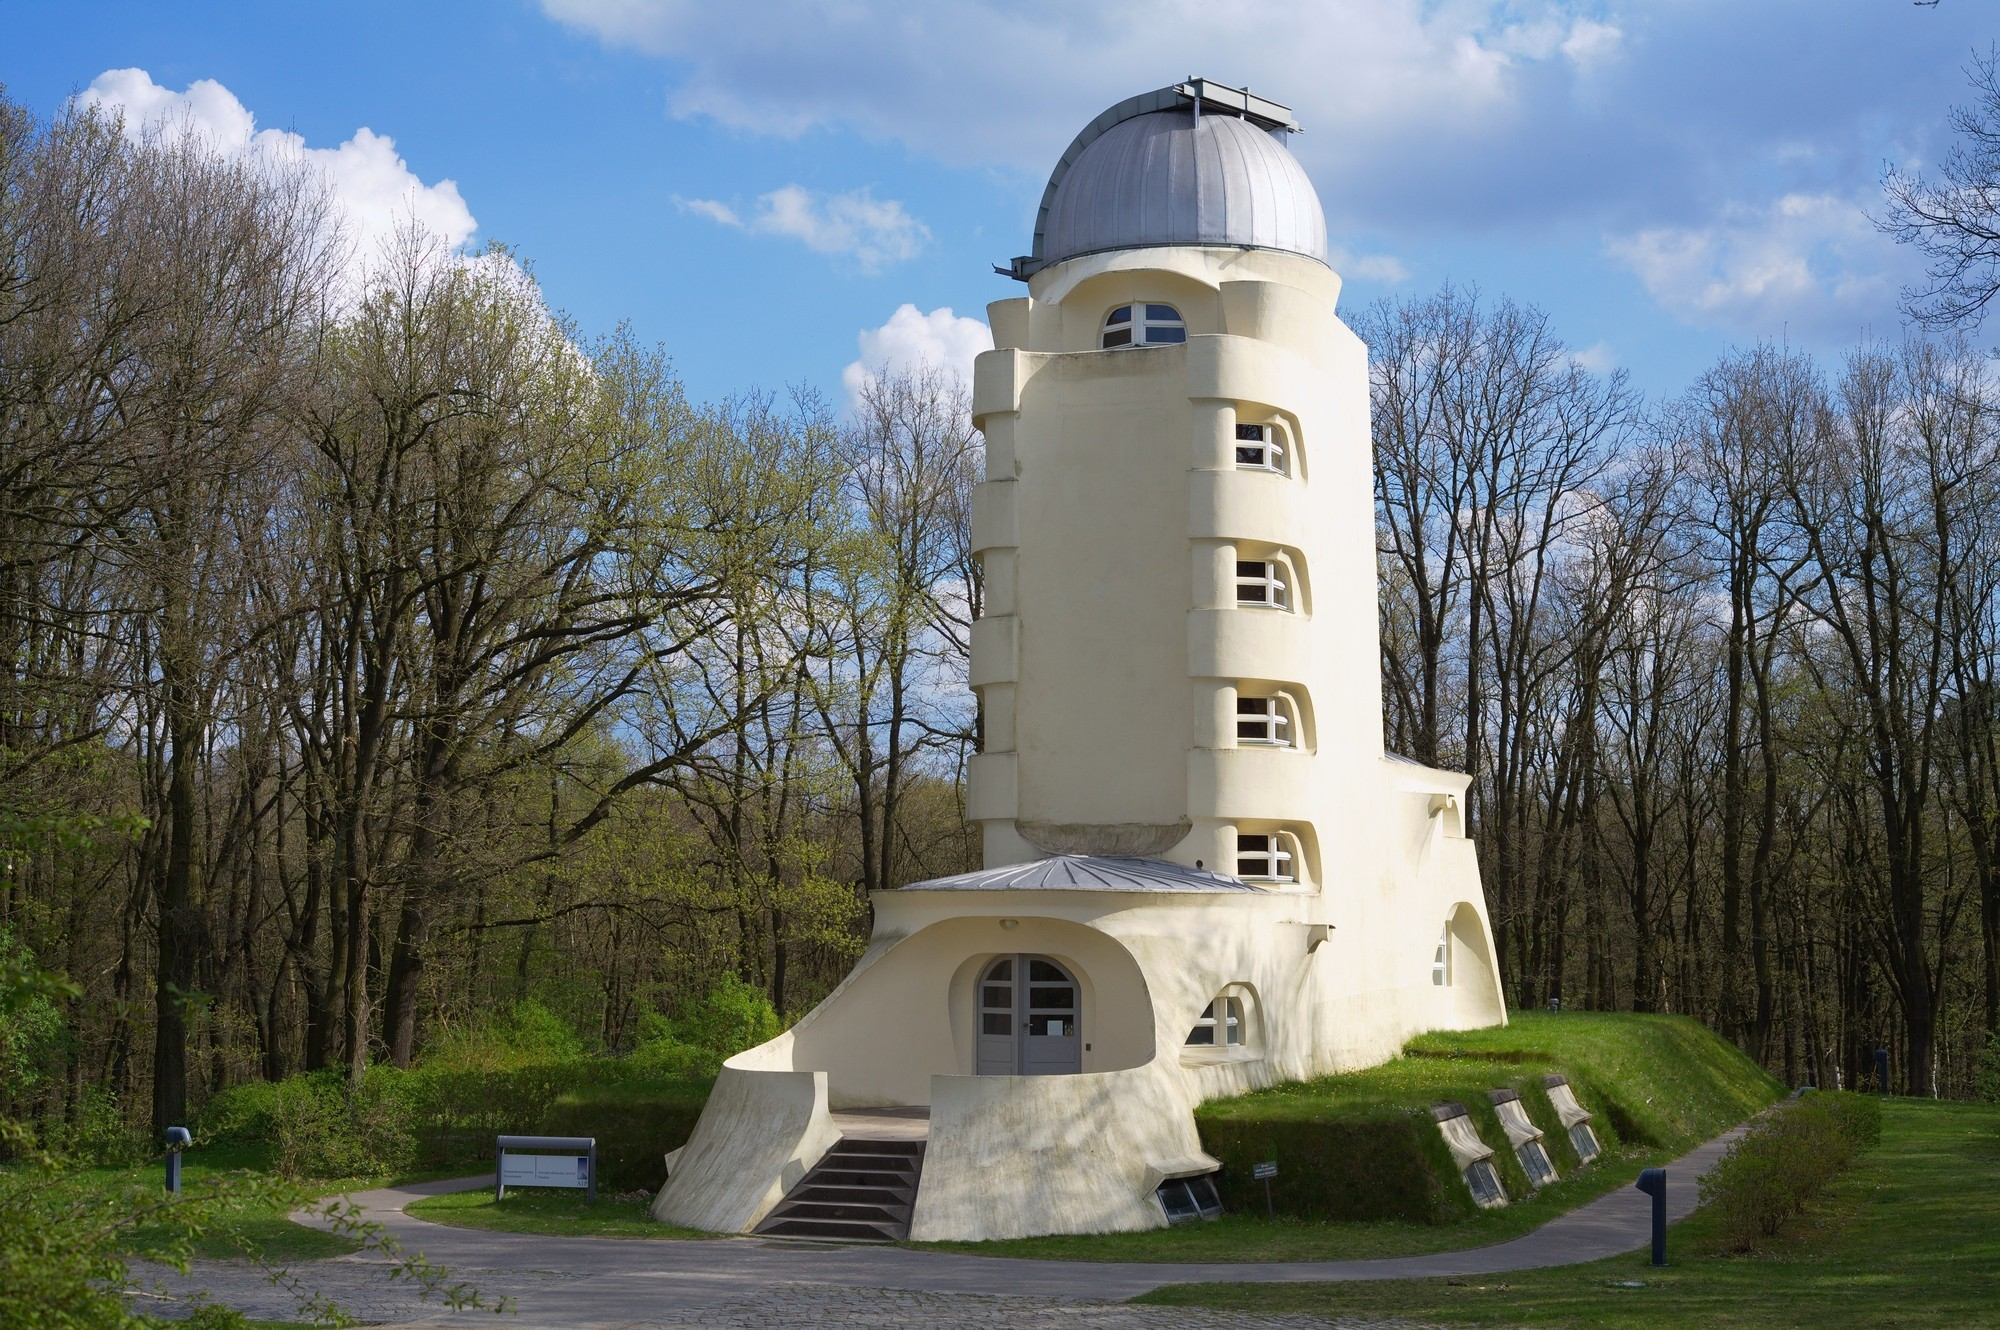 modern architecture buildings. 14 modern buildings receive conservation grants from the getty foundation solar observatory einstein tower architecture p